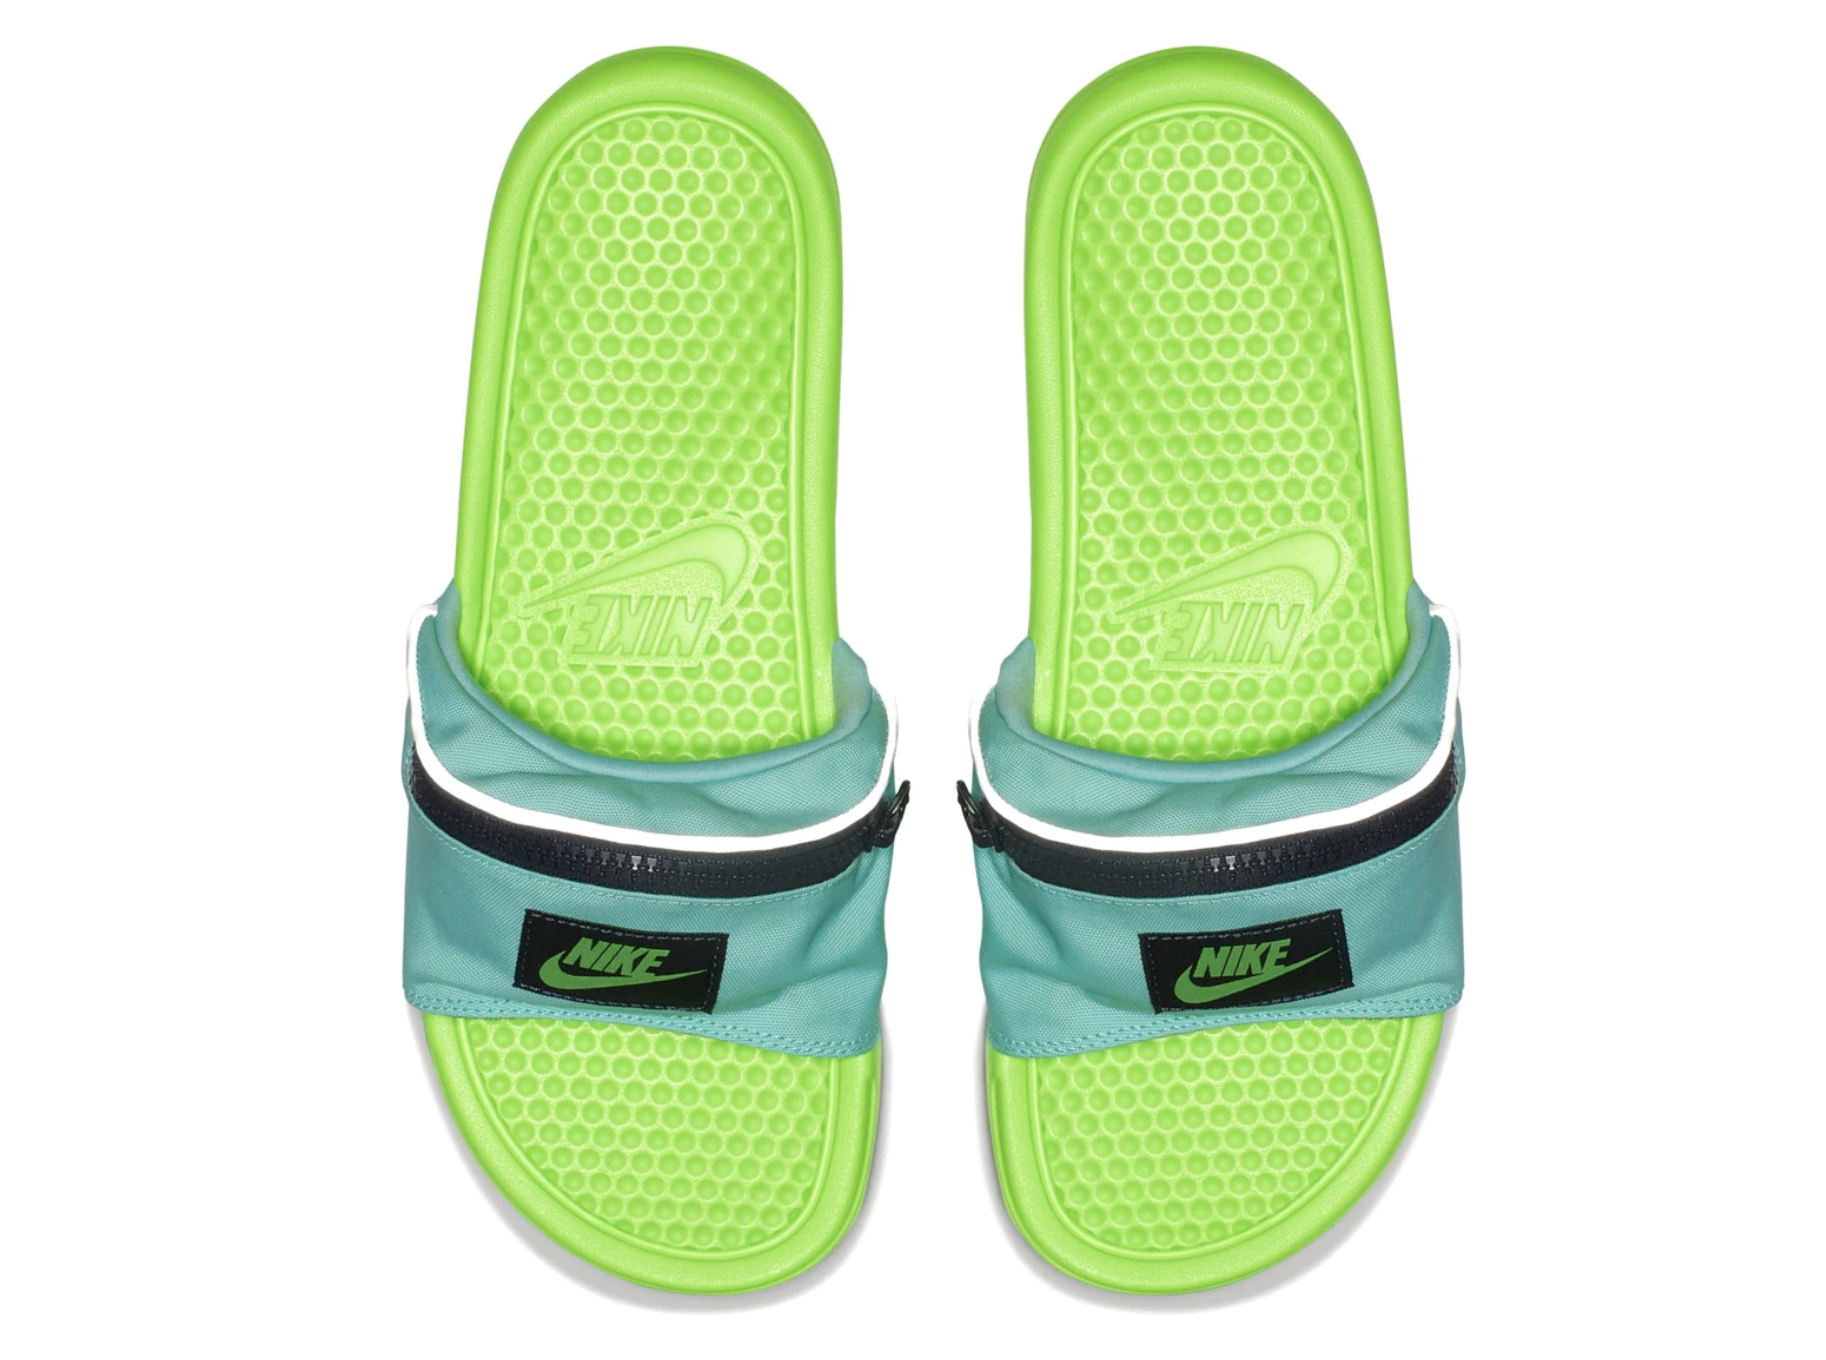 c4b3f8dbb Fanny packs are back – and not in the way you d expect. Prototypes of Nike s  latest slides sprang up overnight